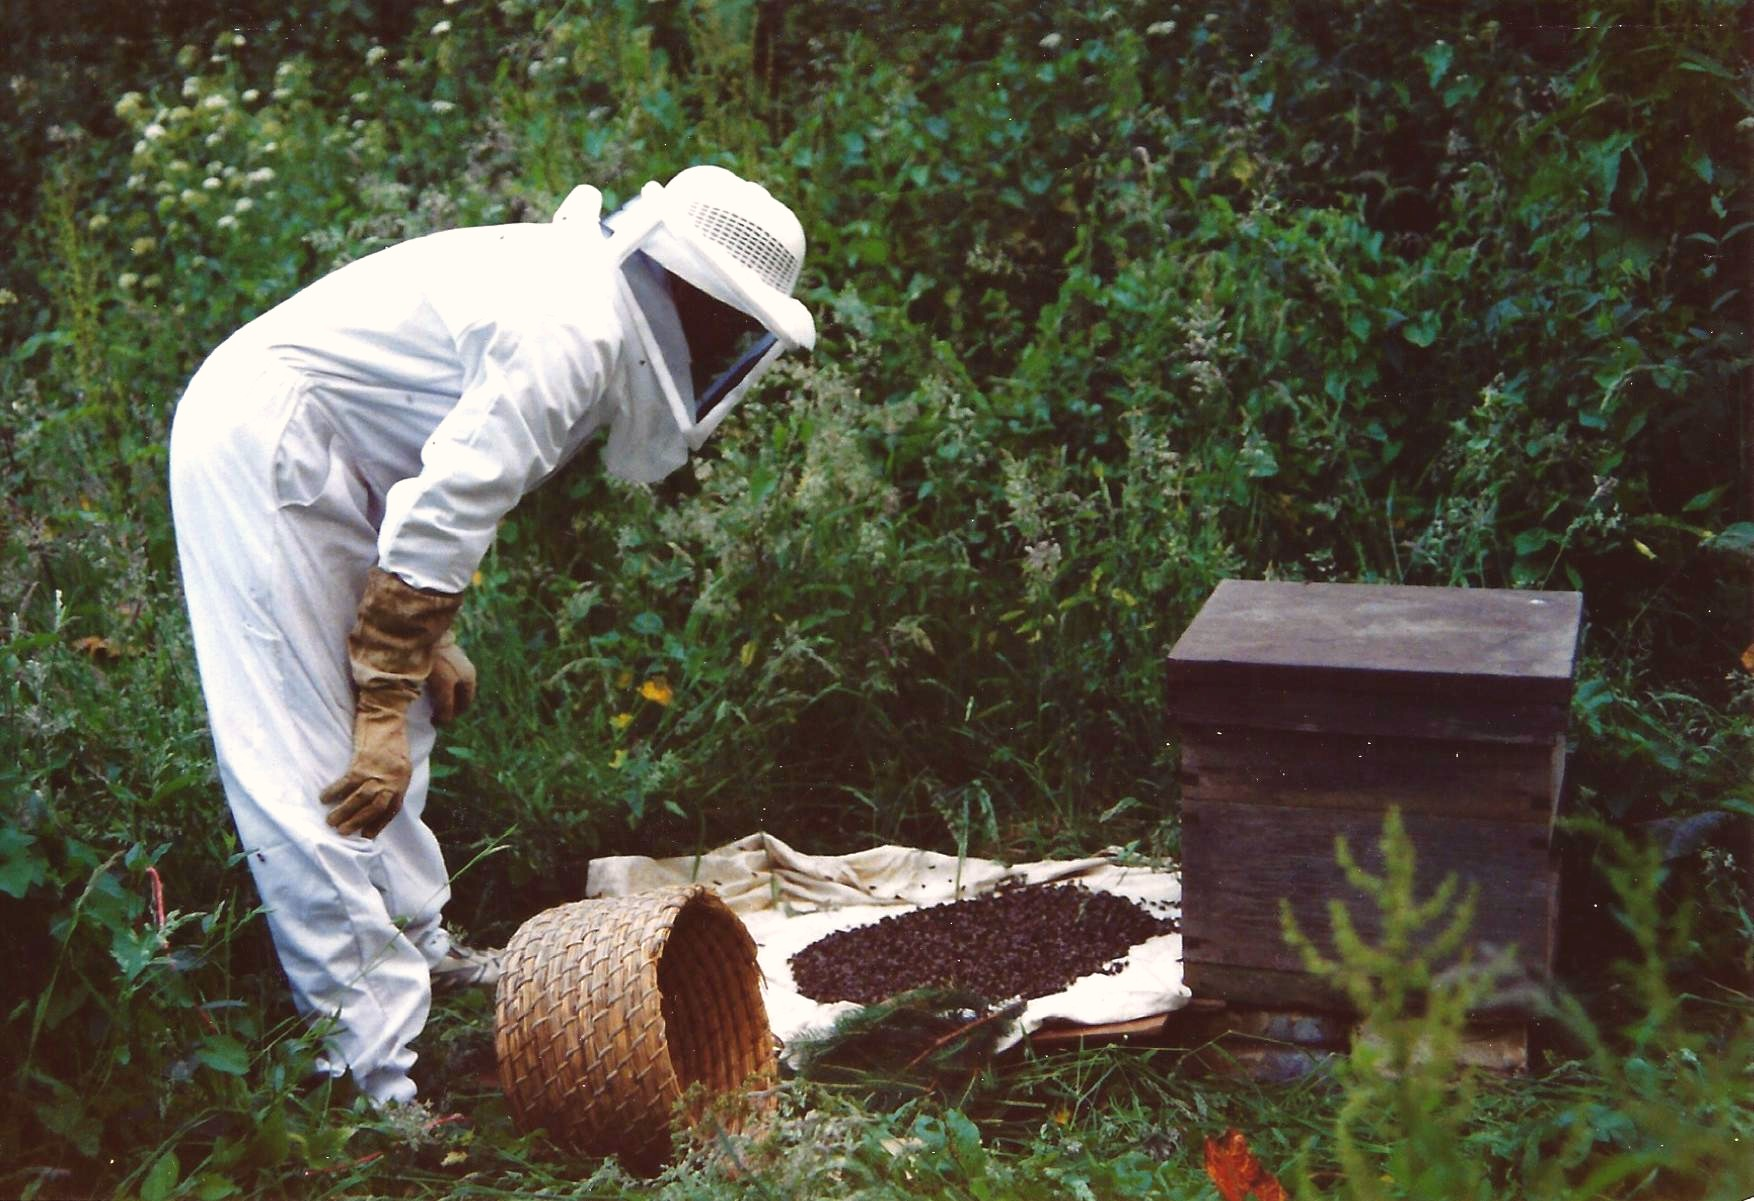 Deryk 'running' a swarm of bees into a hive.